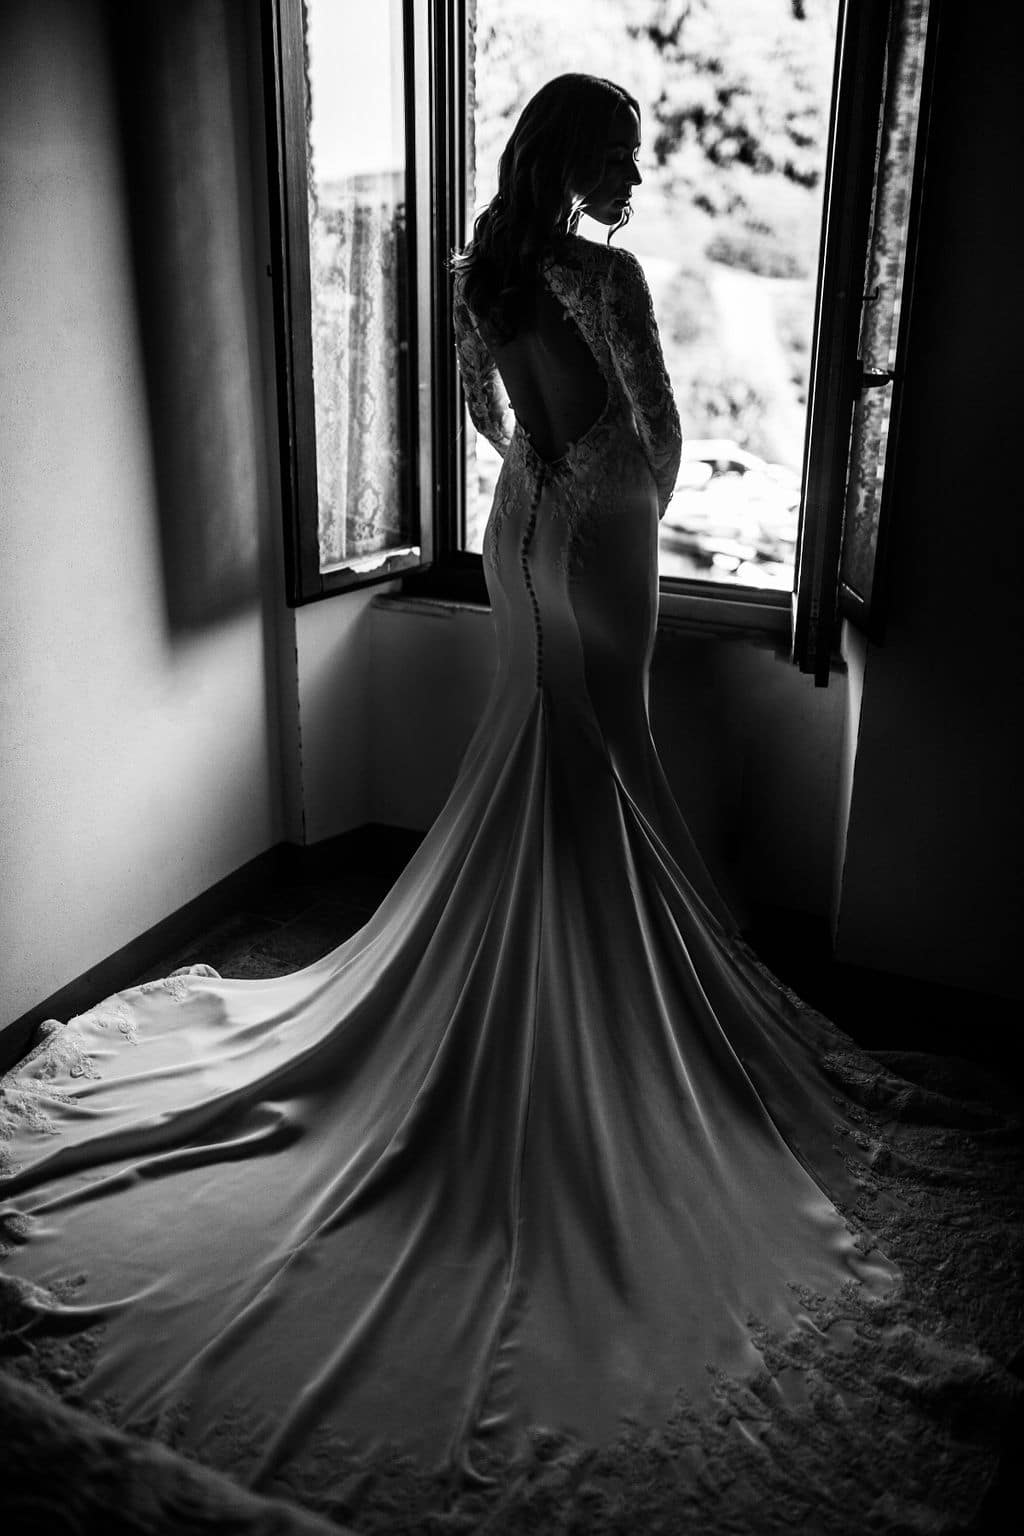 black and white shot of bride in gown in front of large window